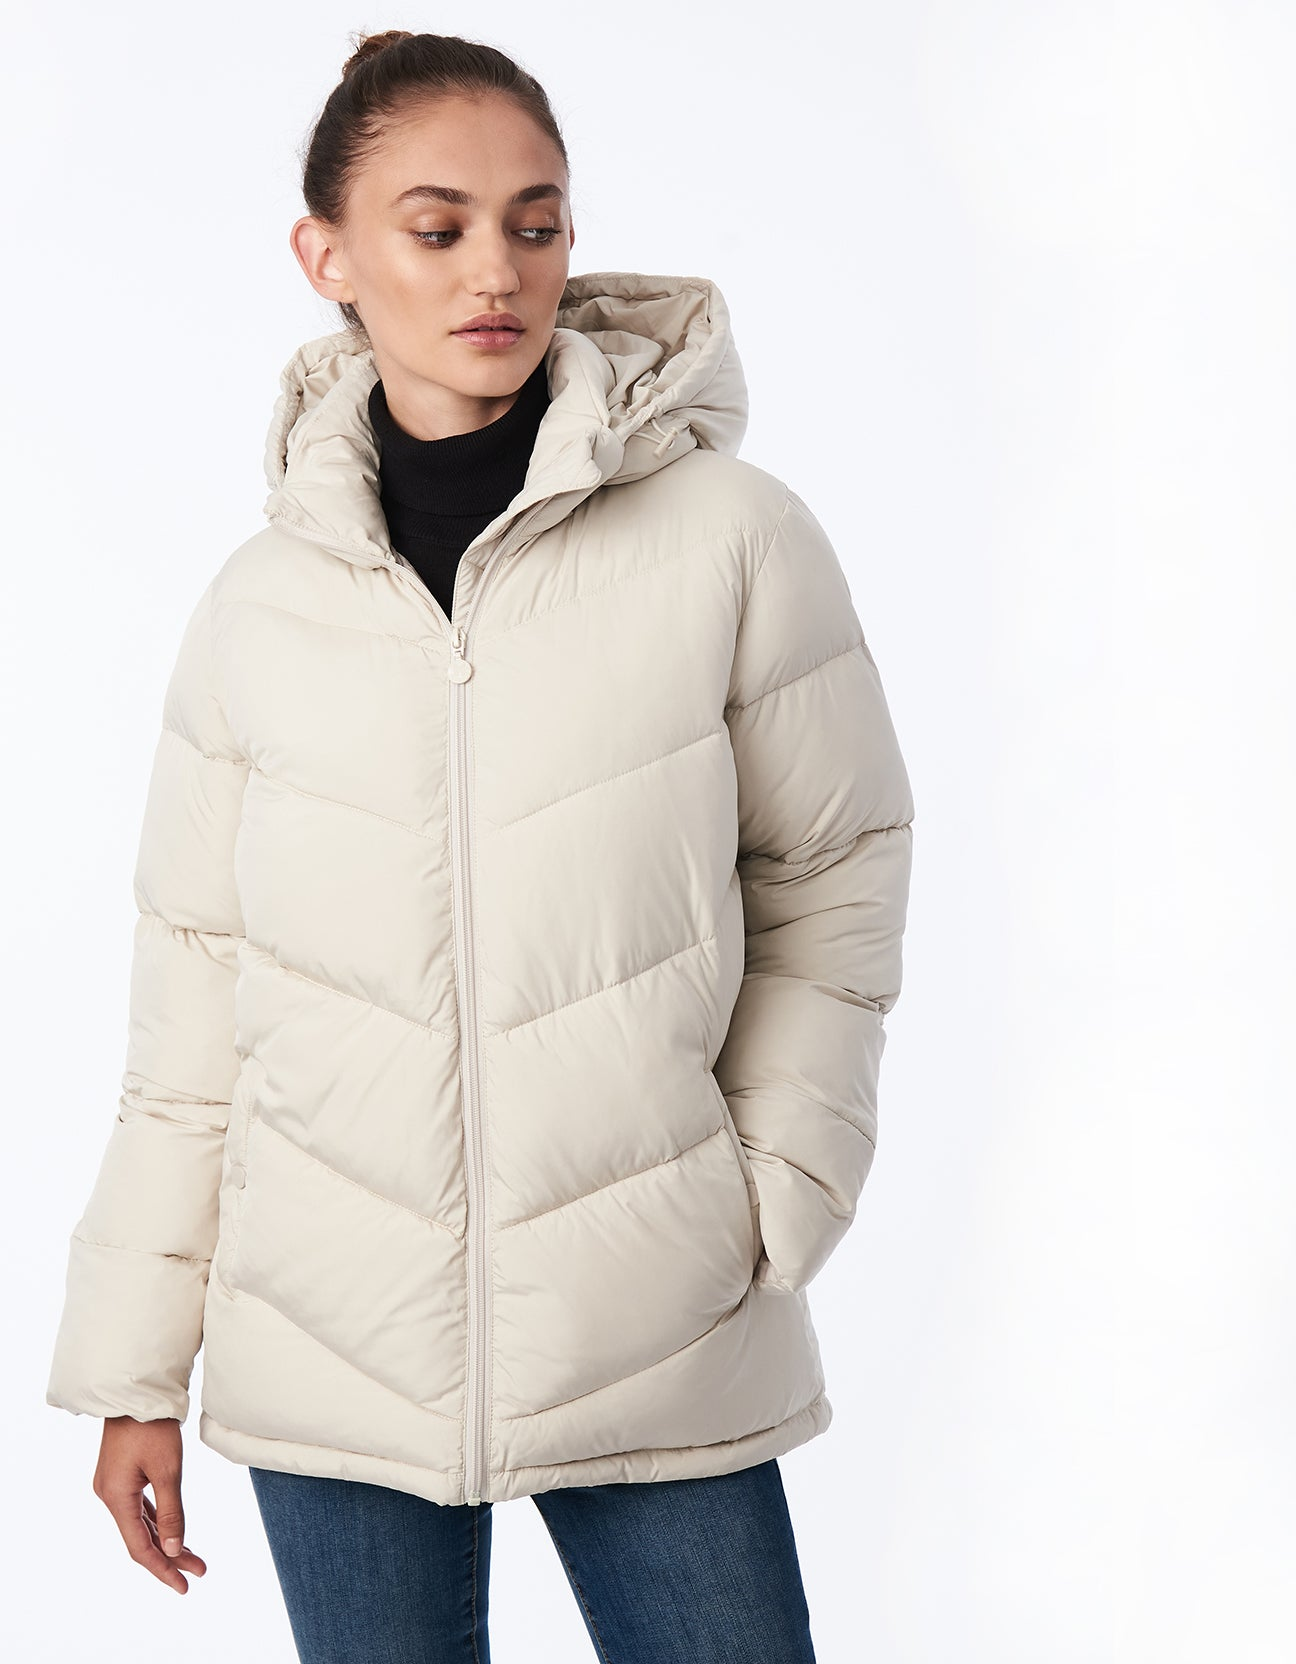 Bernardo Love Full Circle Puffer - Recycled Microtouch